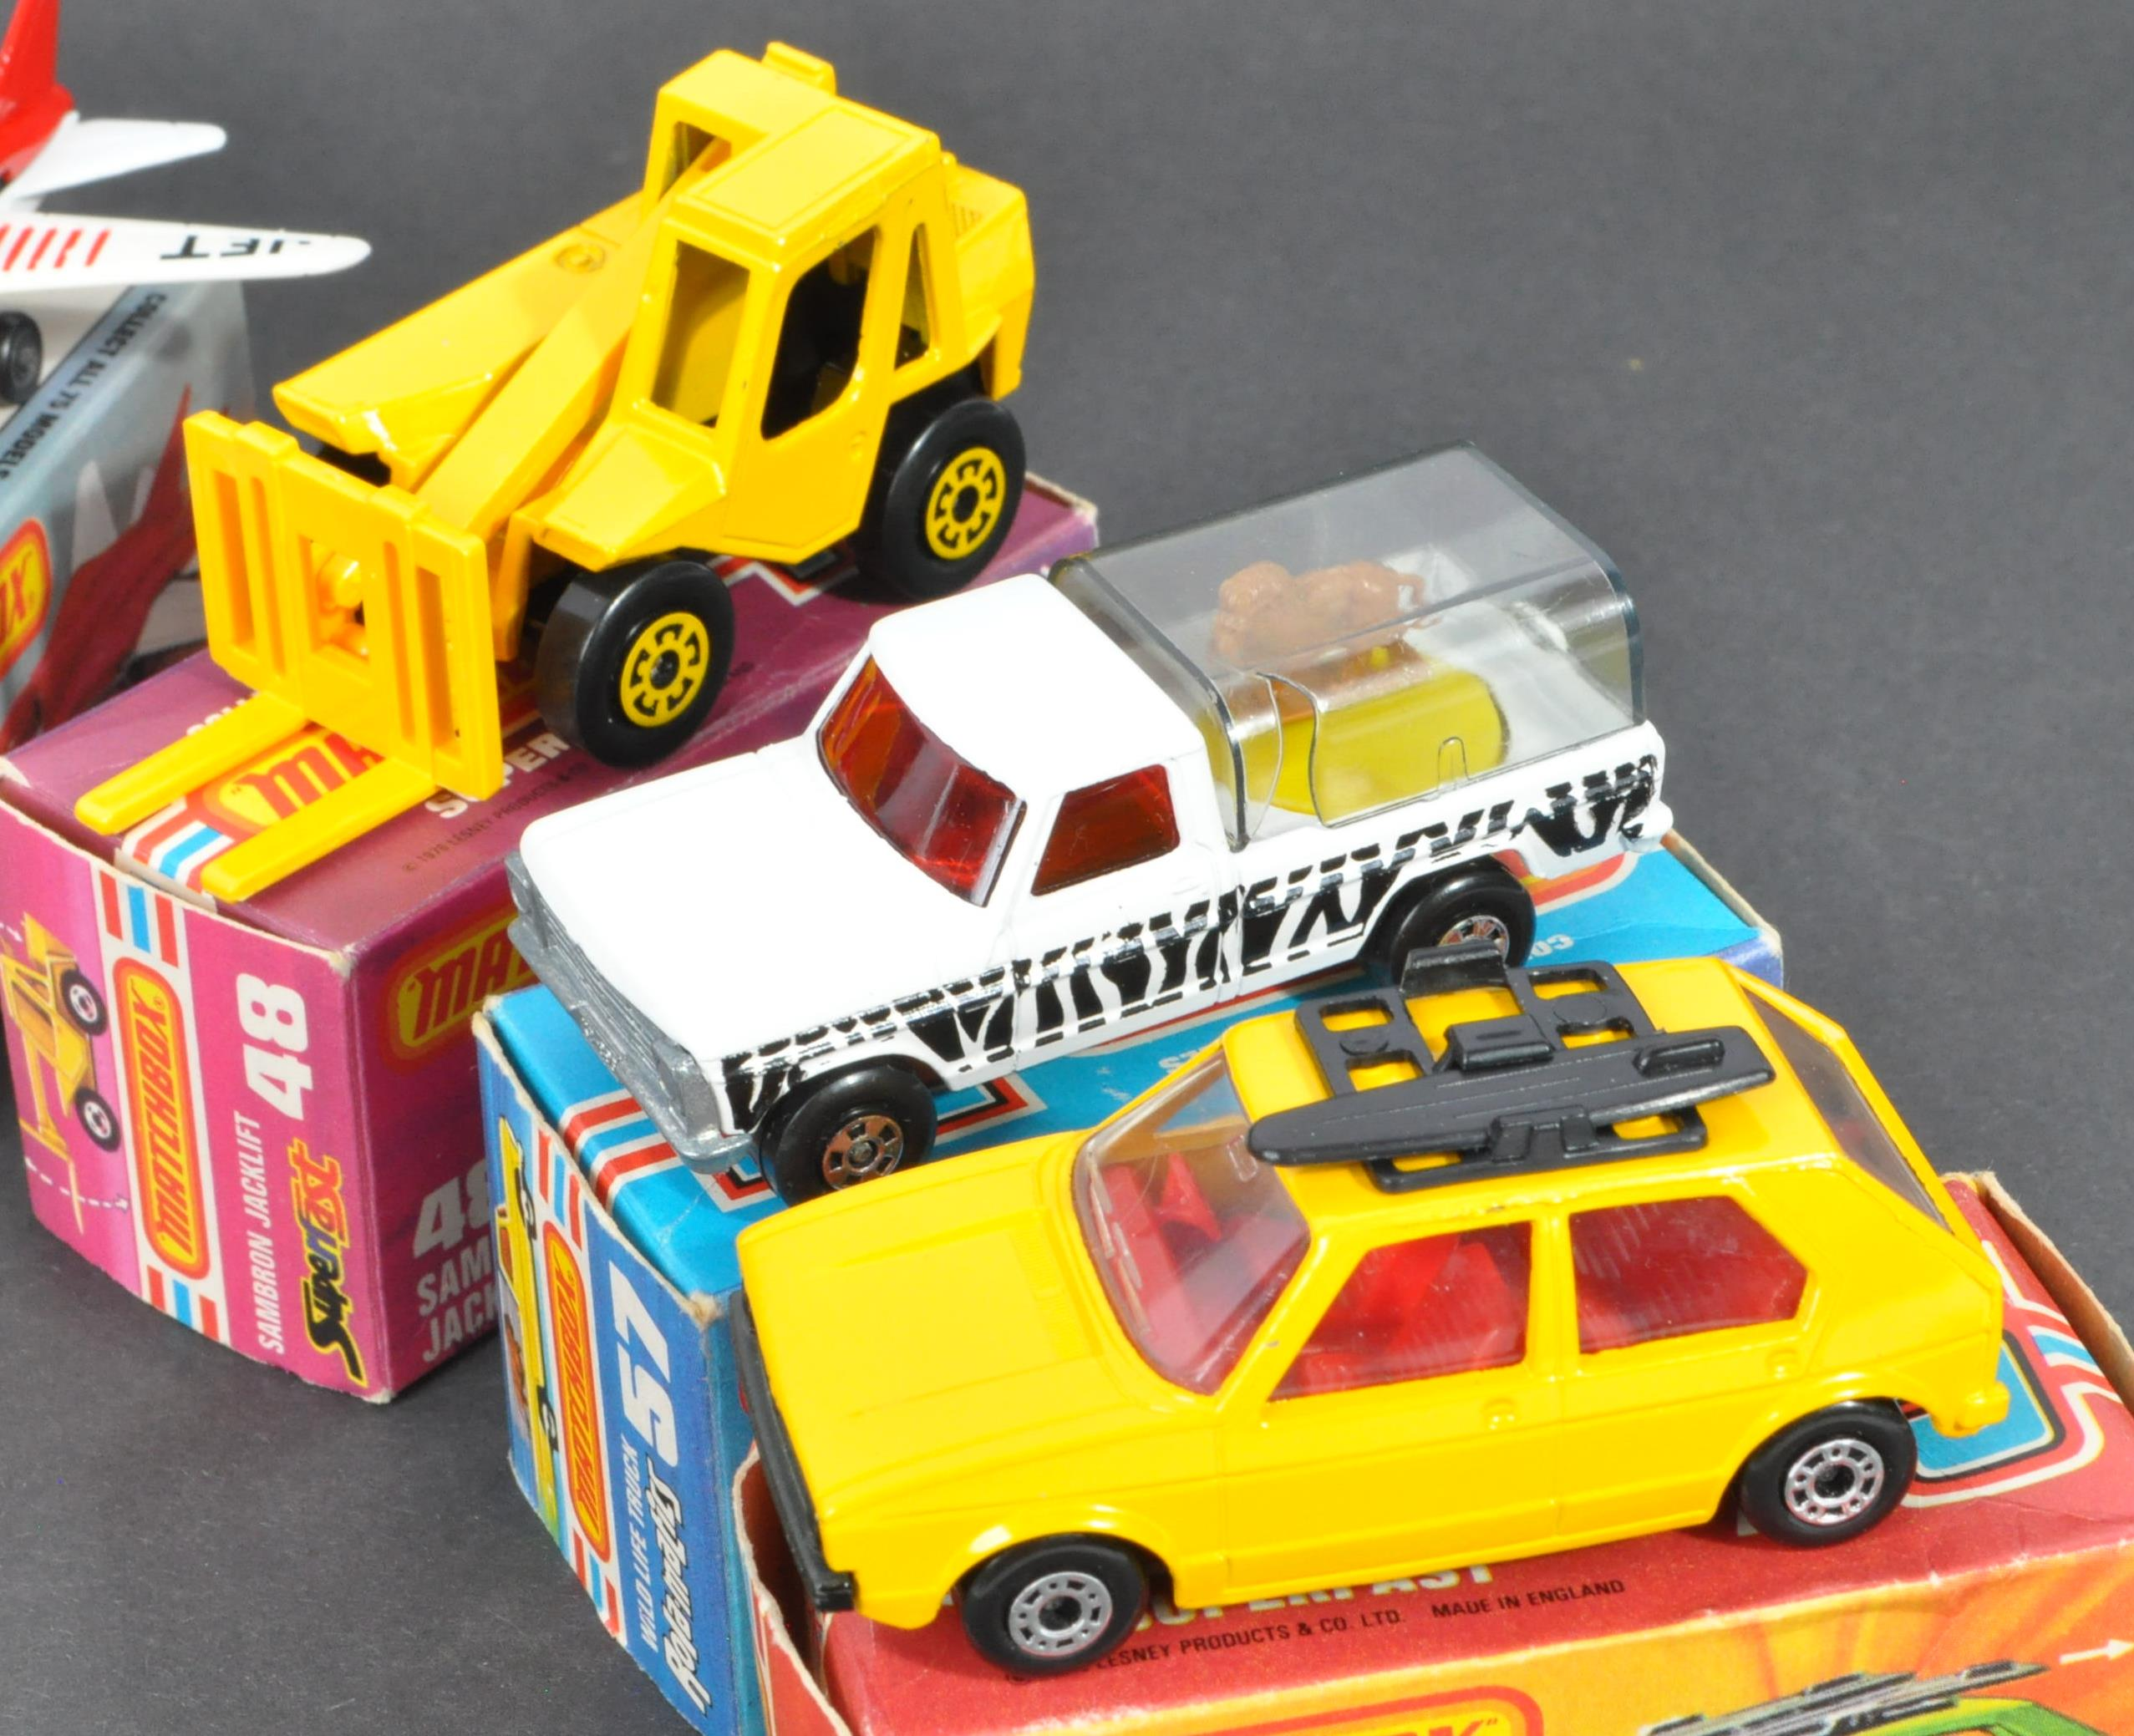 COLLECTION OF VINTAGE MATCHBOX 1-75 SERIES BOXED DIECAST MODELS - Image 4 of 4